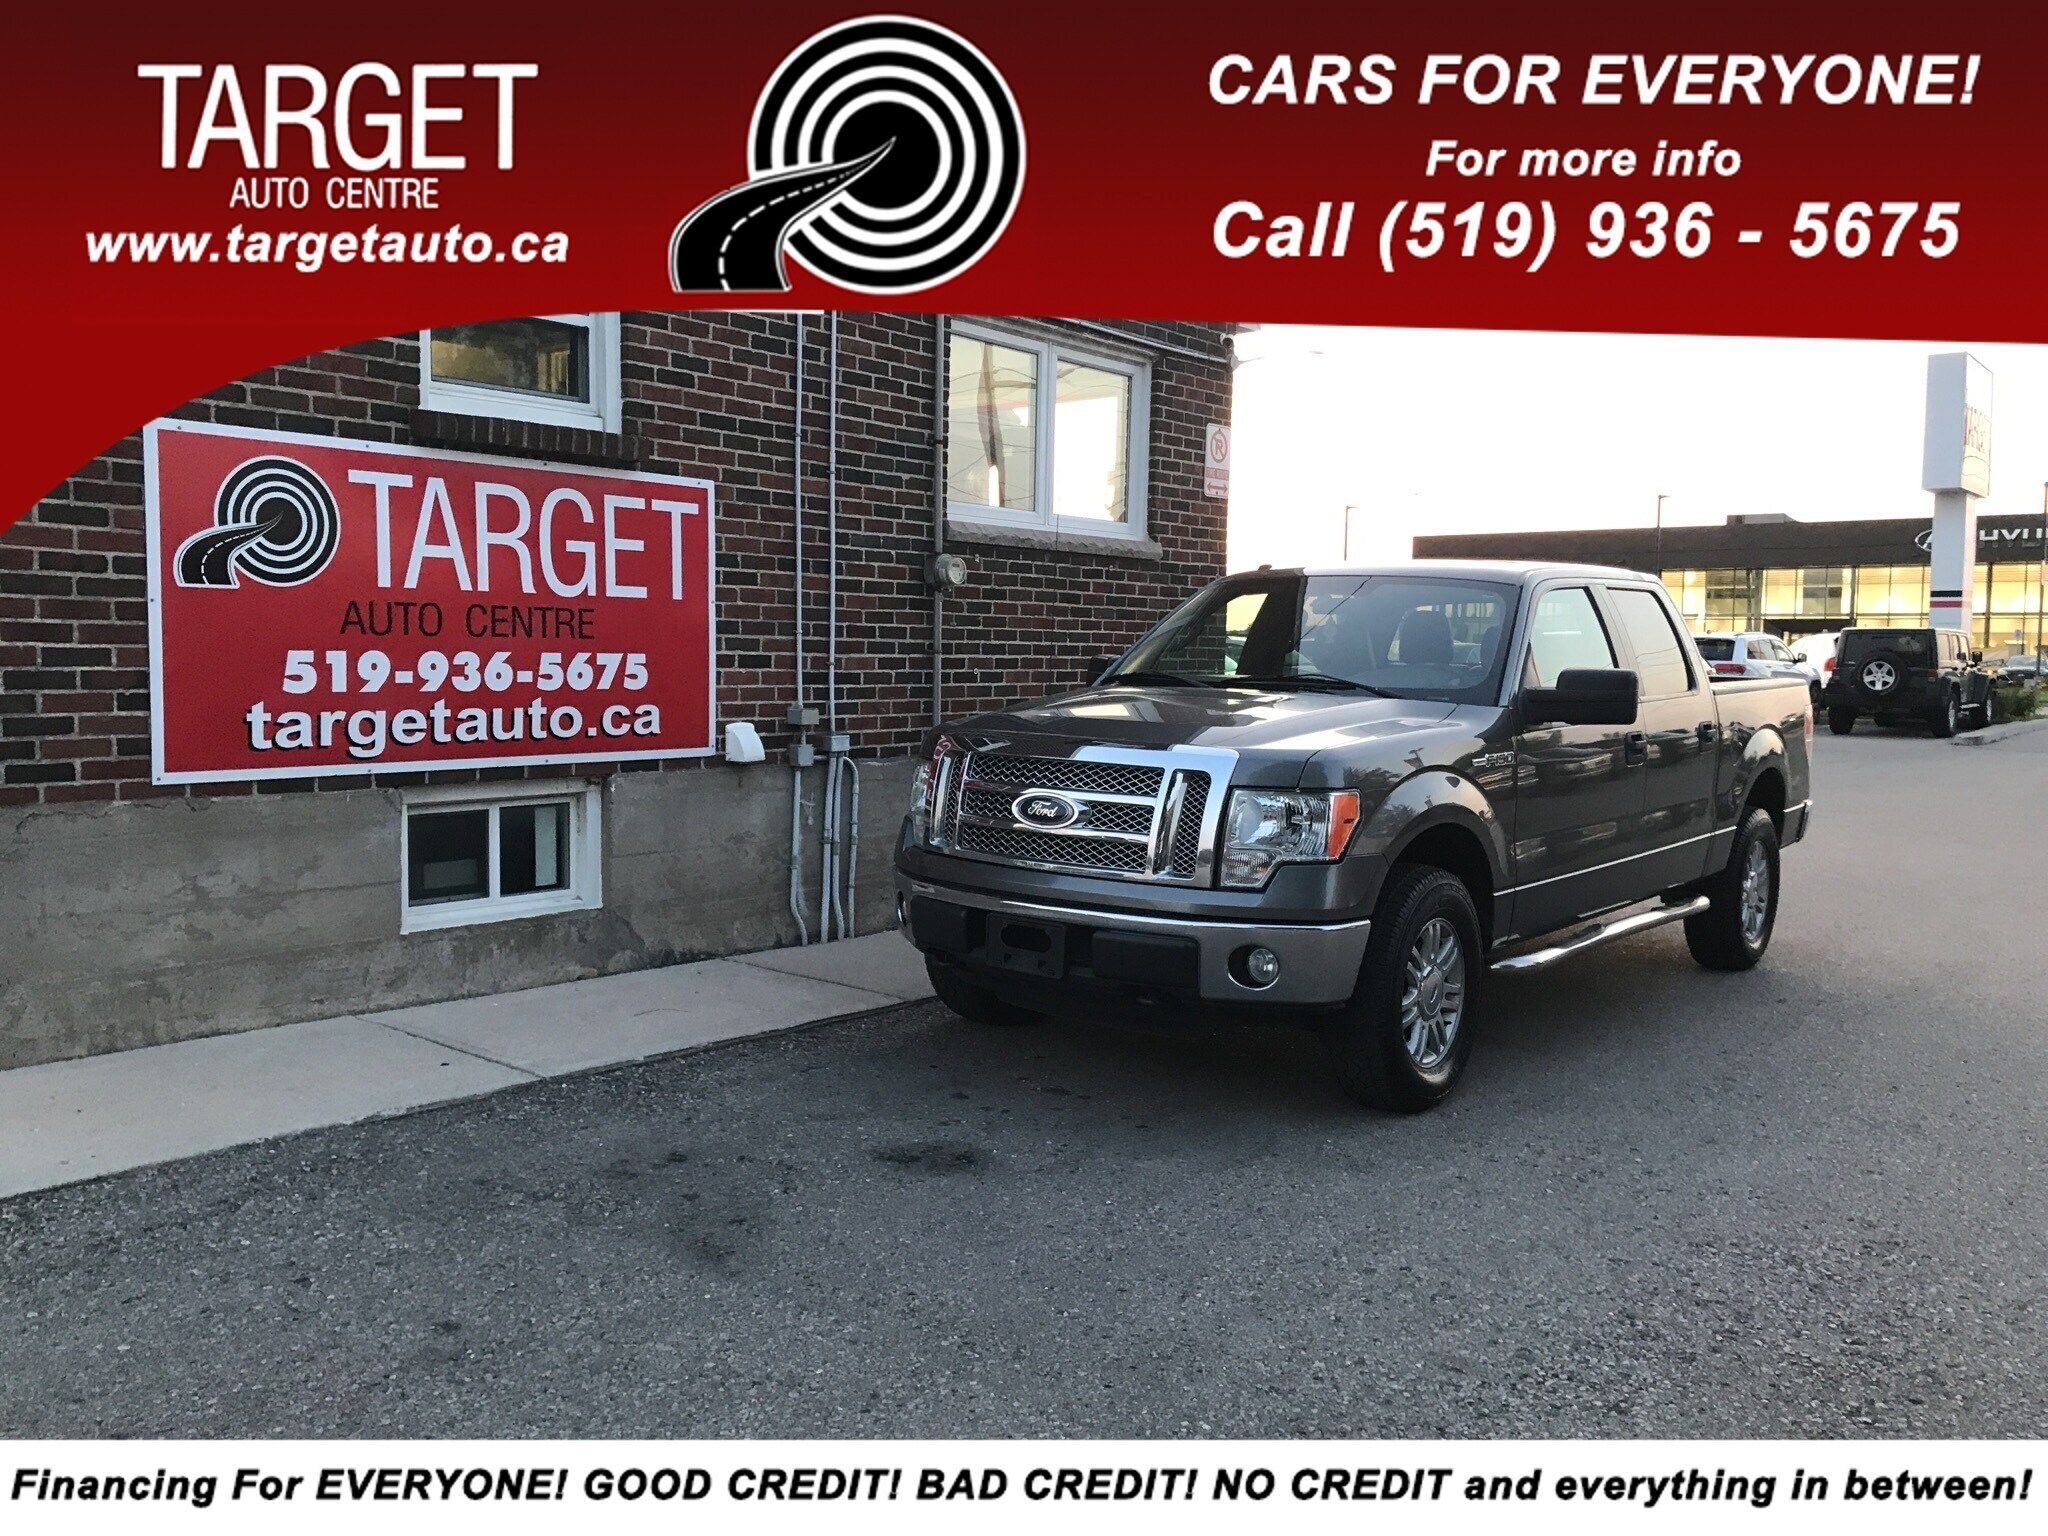 Used Cars for Sale London ON - Target Auto Centre